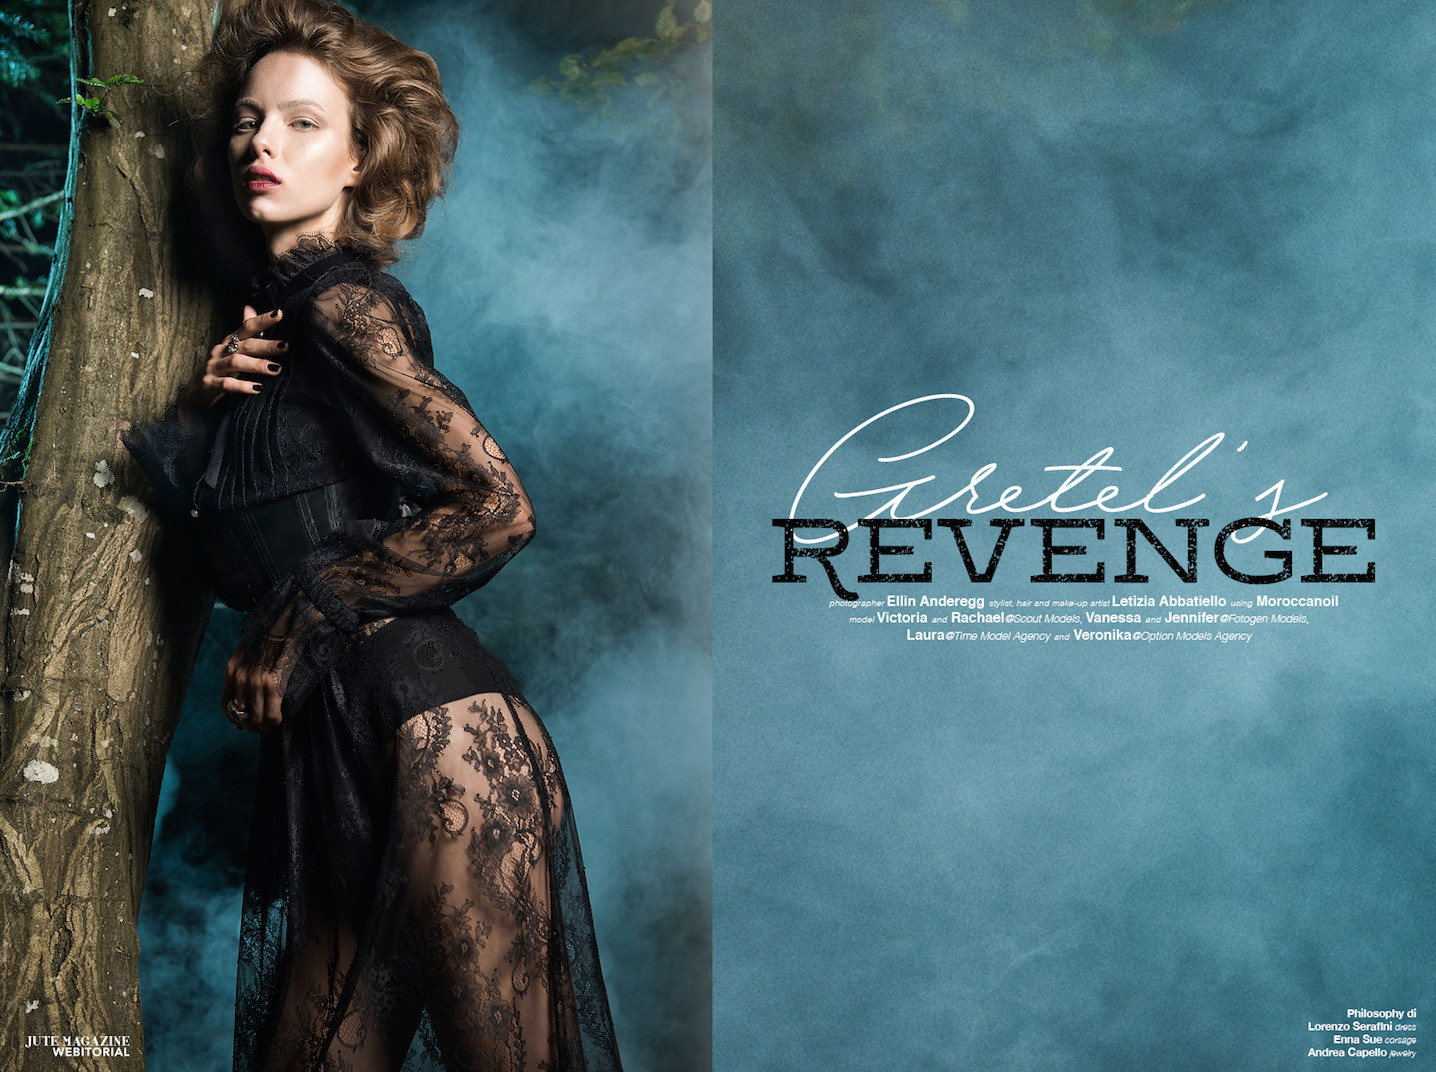 Hair, Nail, Make-up und Fashion styling portfolio / letizia-abbatiello - revenge-ID169-1.png?v=1585908002